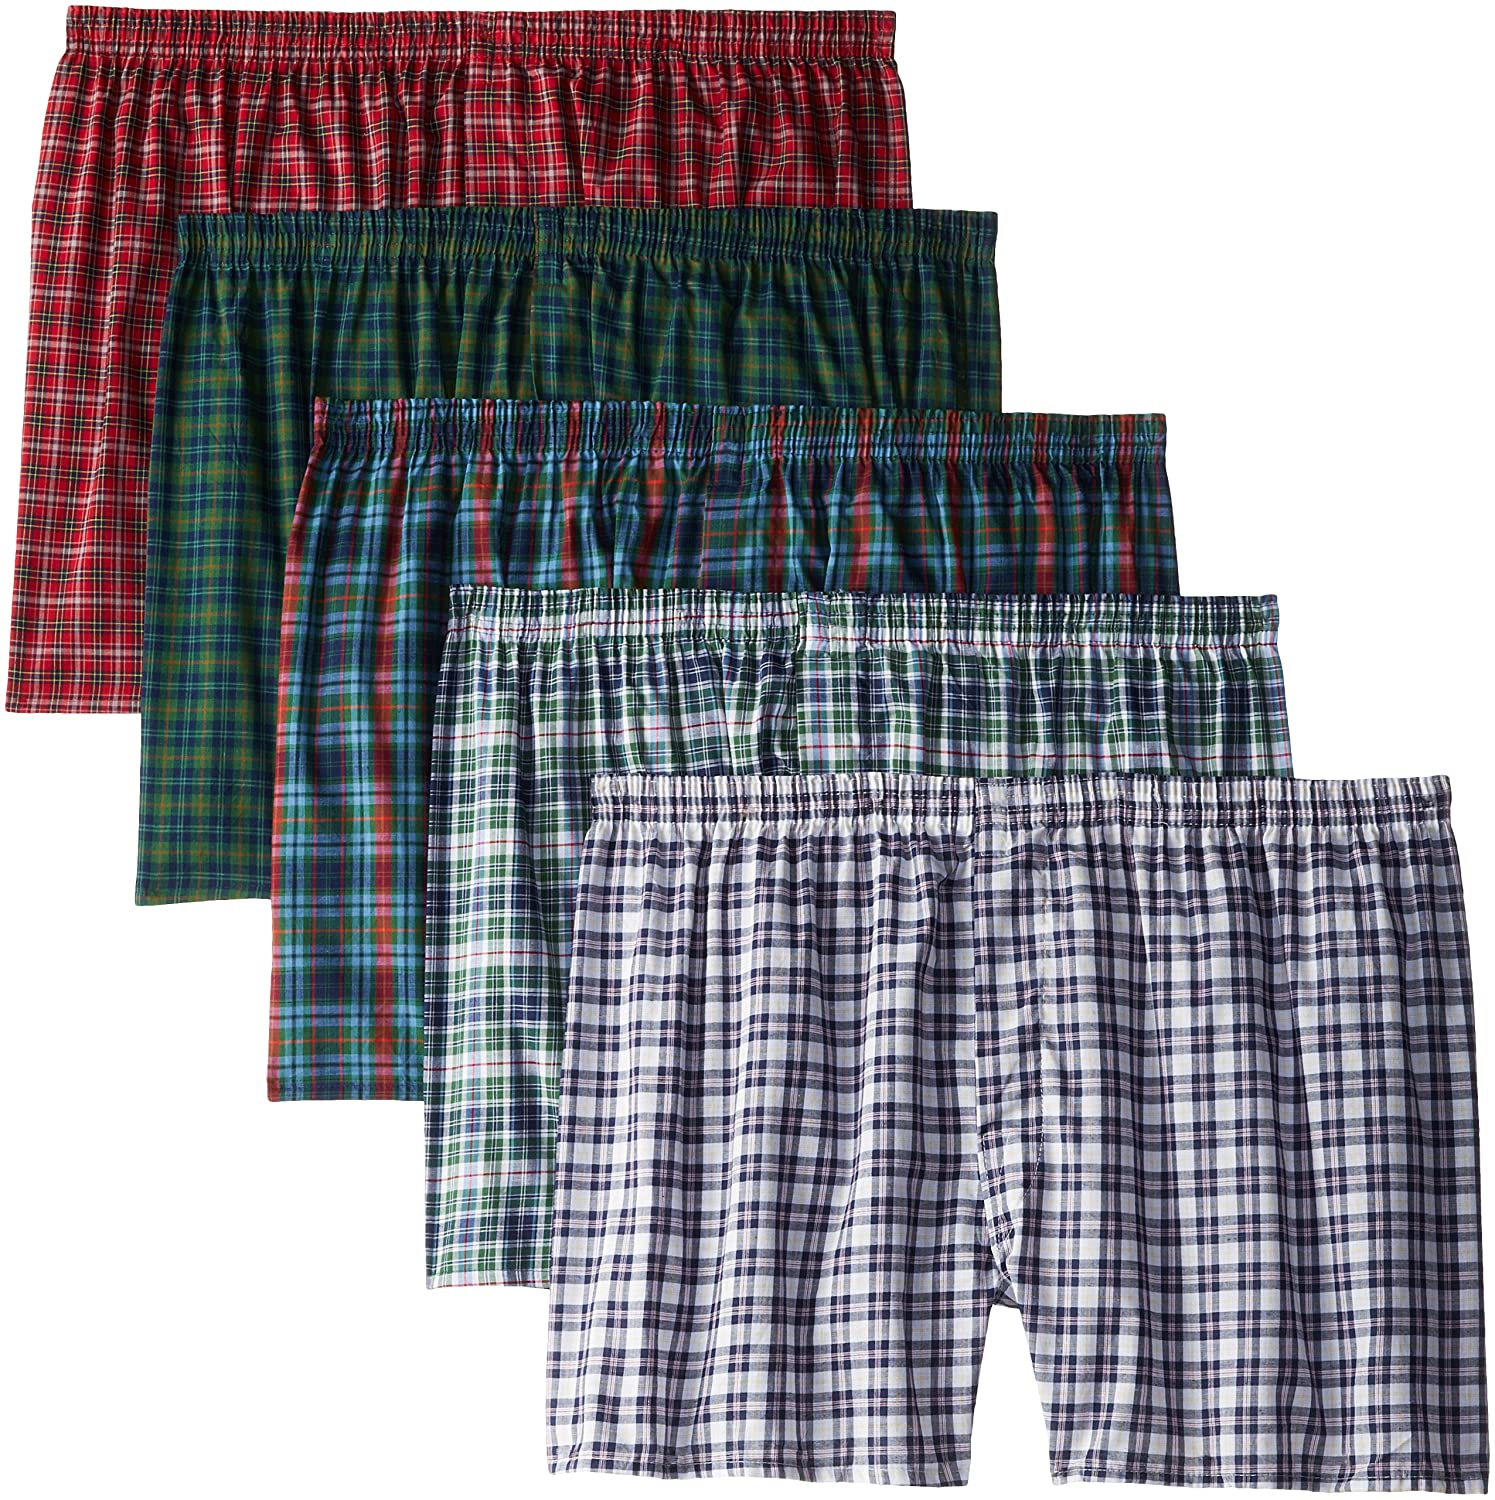 Fruit of the Loom Men's Big and Tall Size Tartan Boxers(Pack of 5) Assorted XX-Large(Pack of 5) 5P550